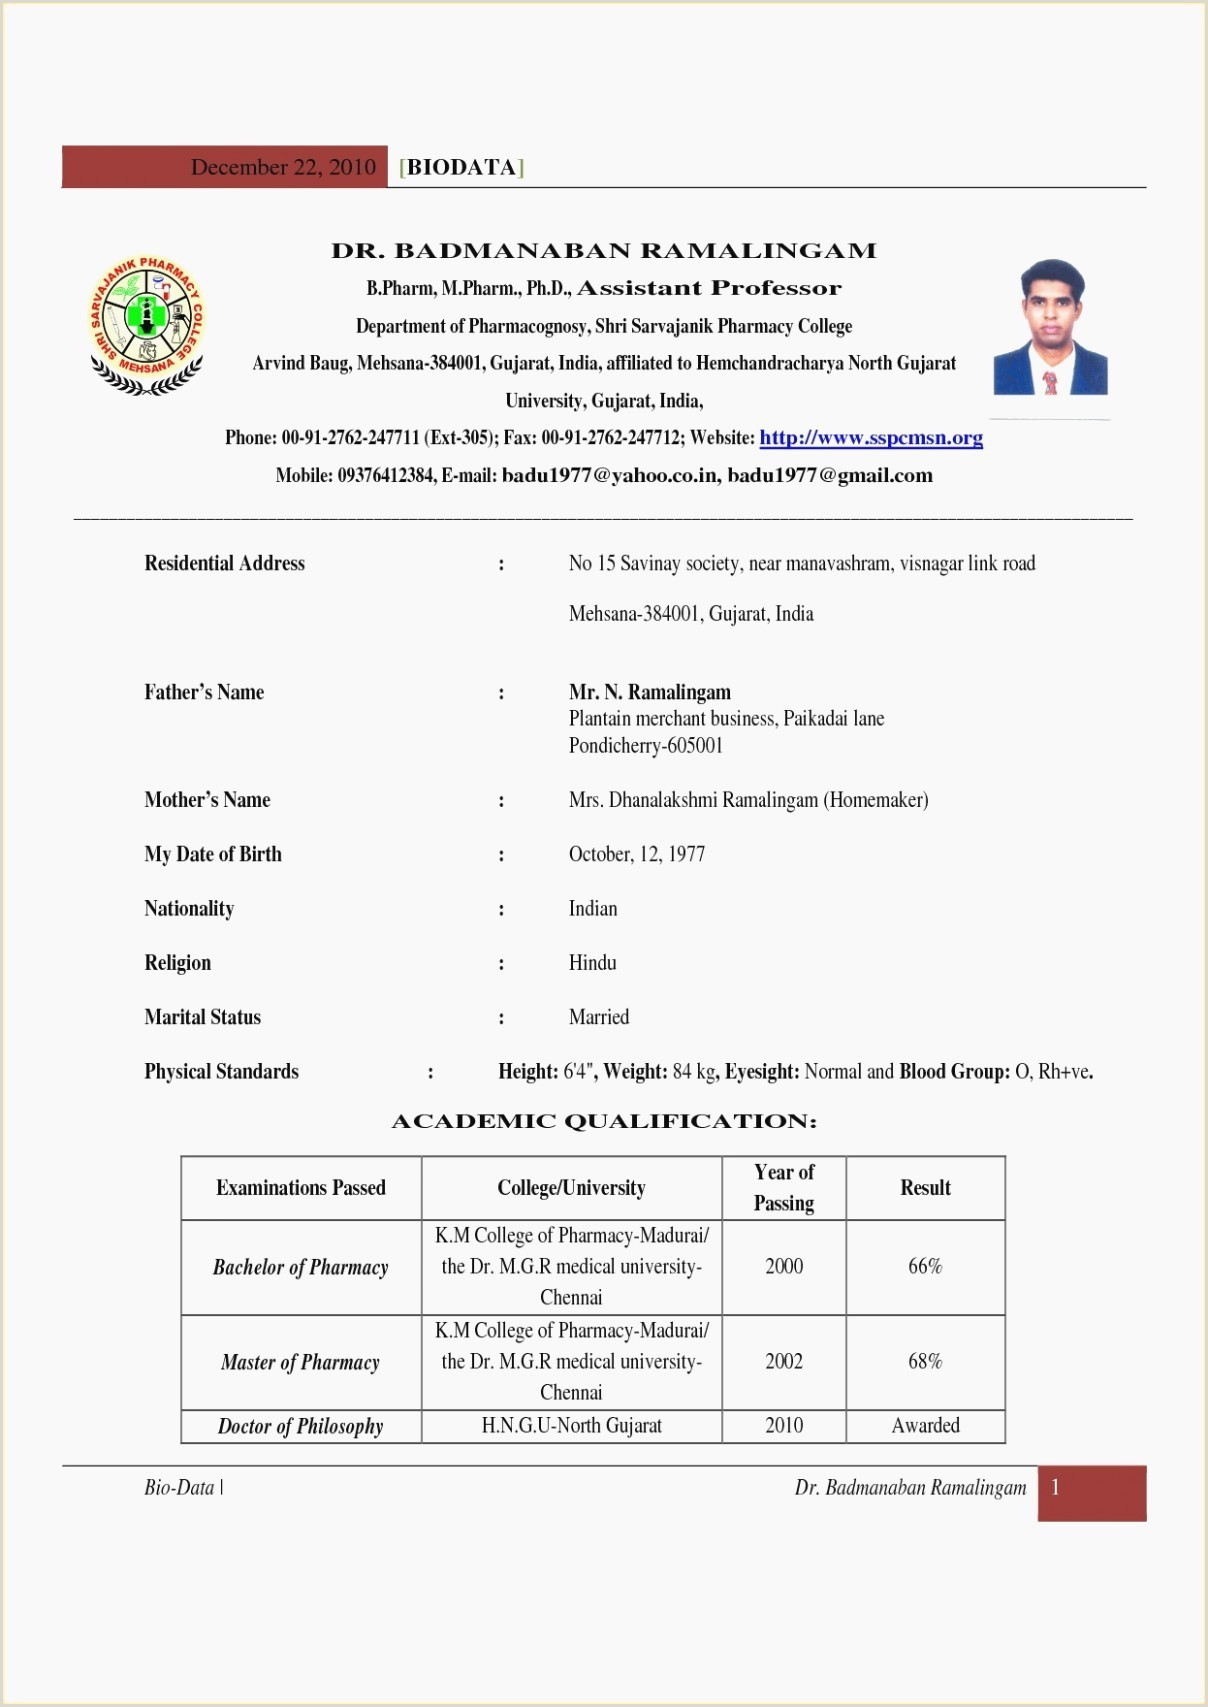 Mba Fresher Cv format Doc 55 Simple Resume format for Freshers Doc